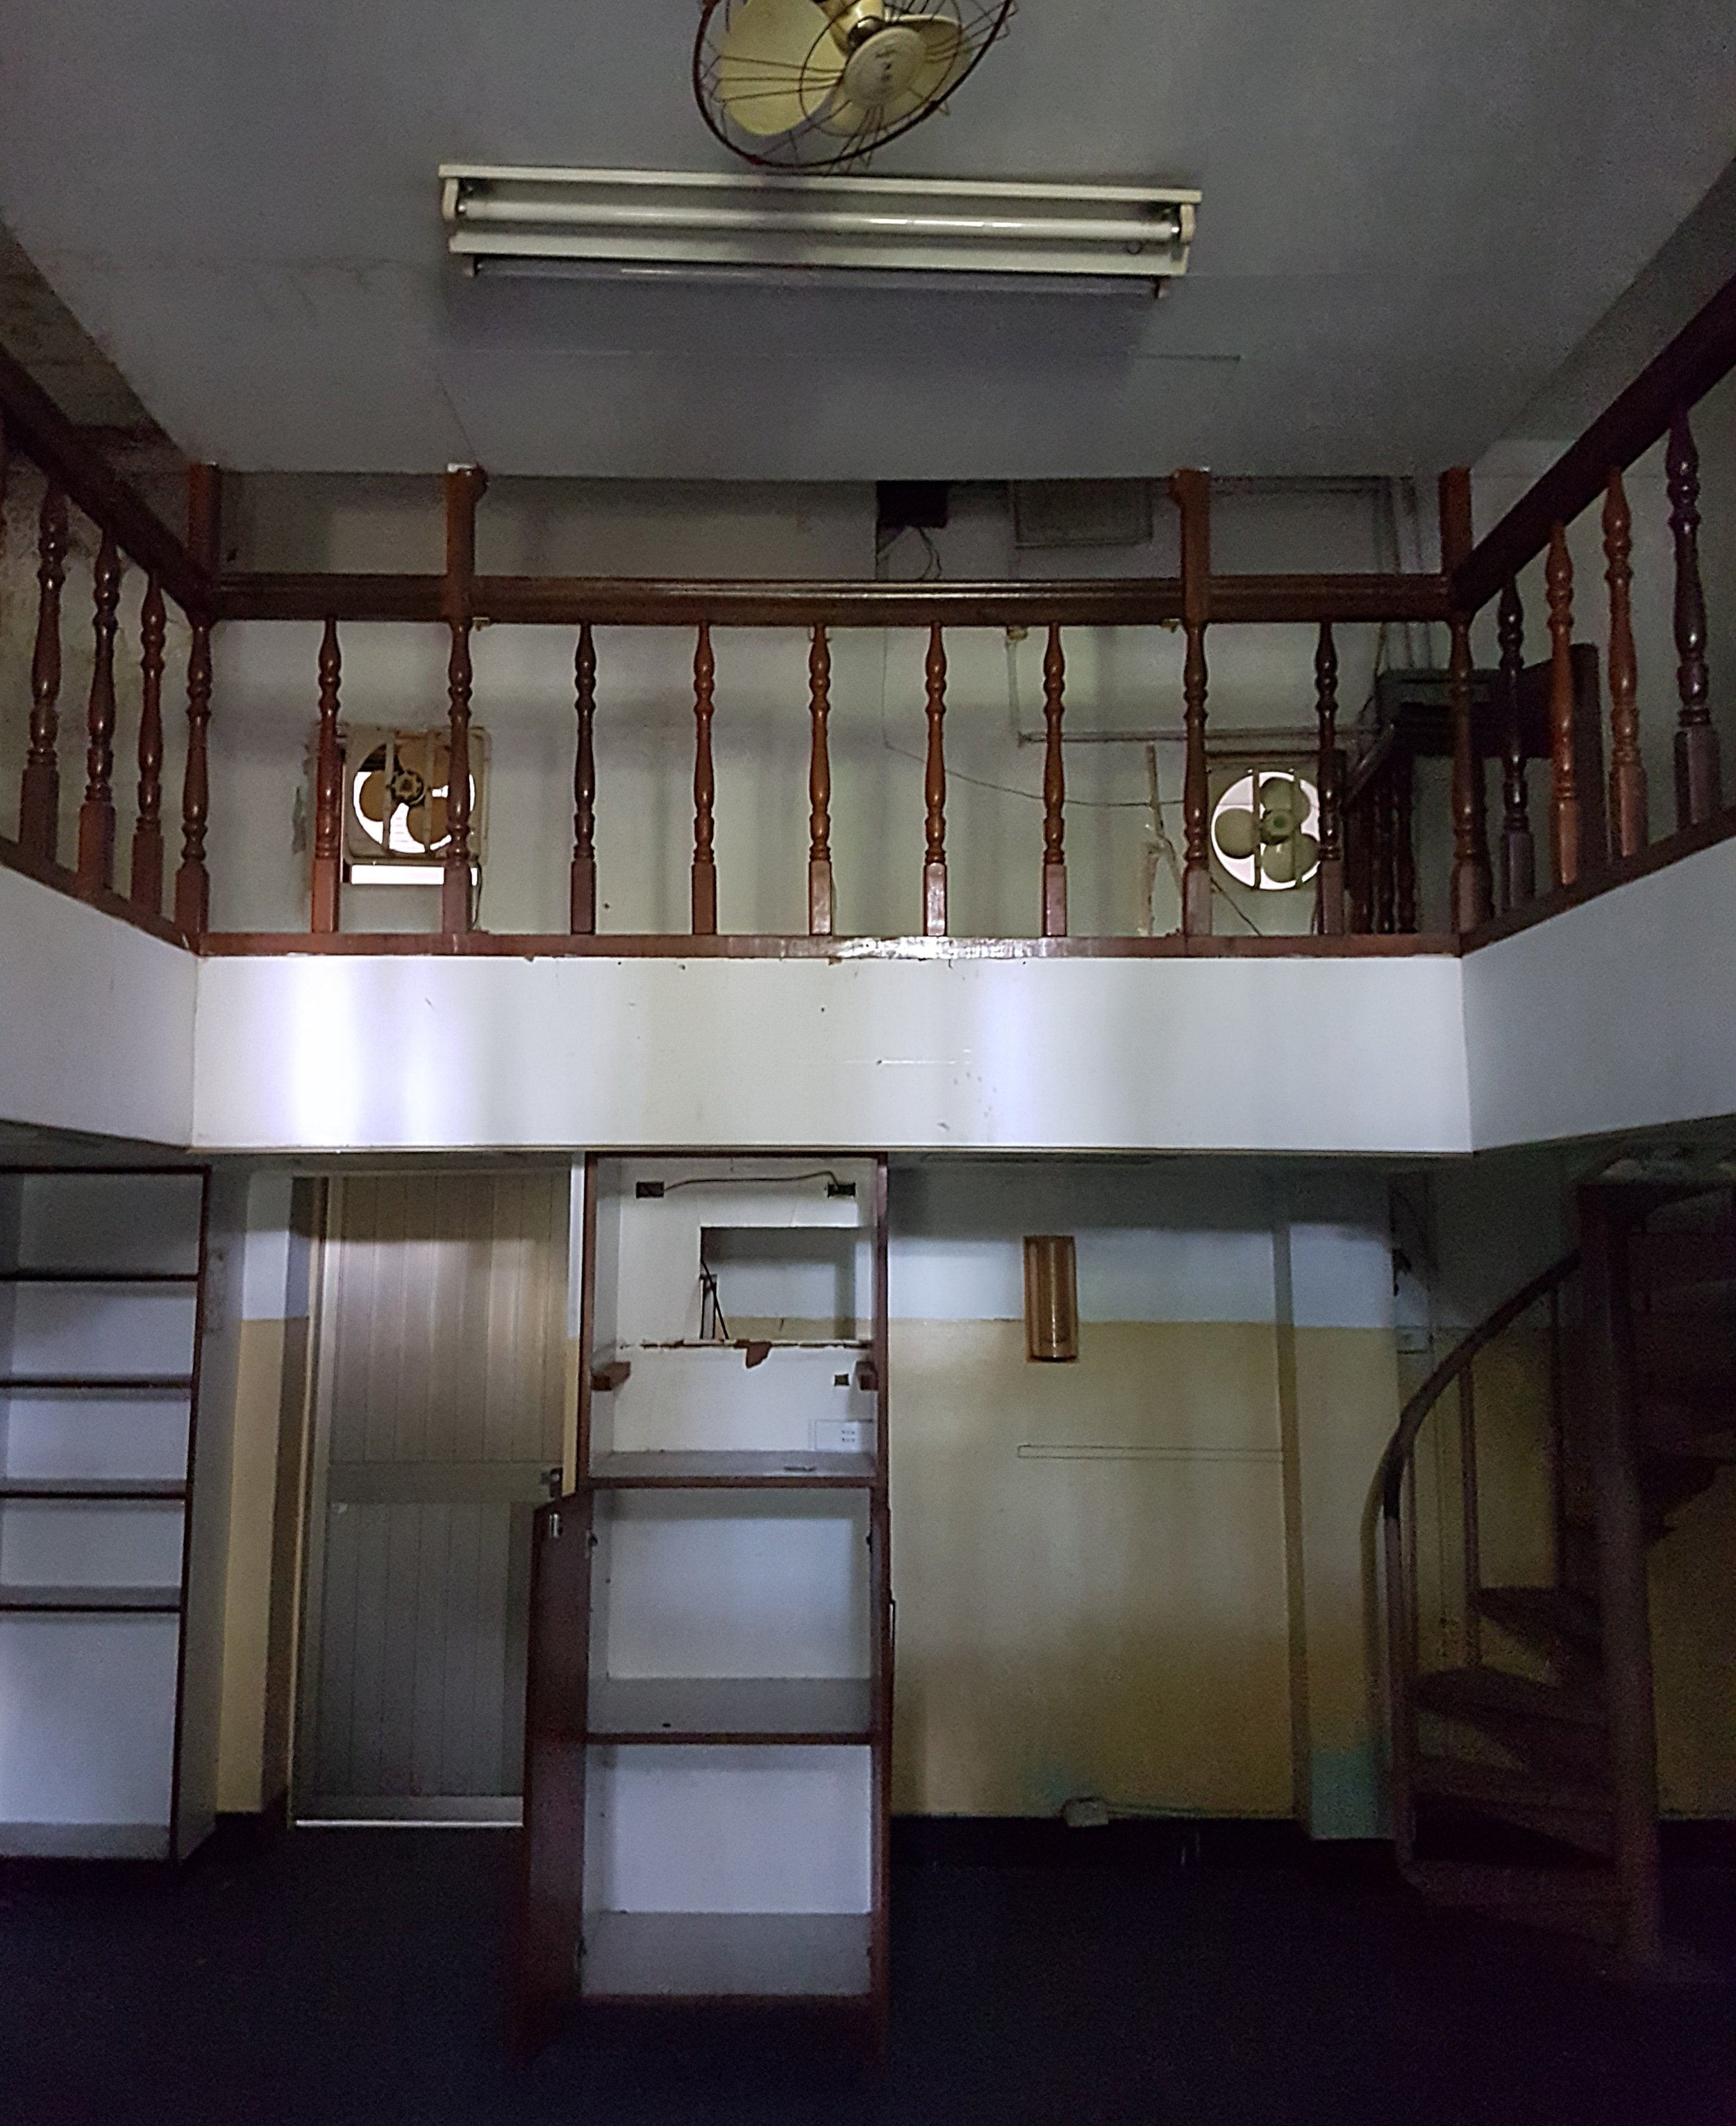 One of the rooms with the strange balconies.